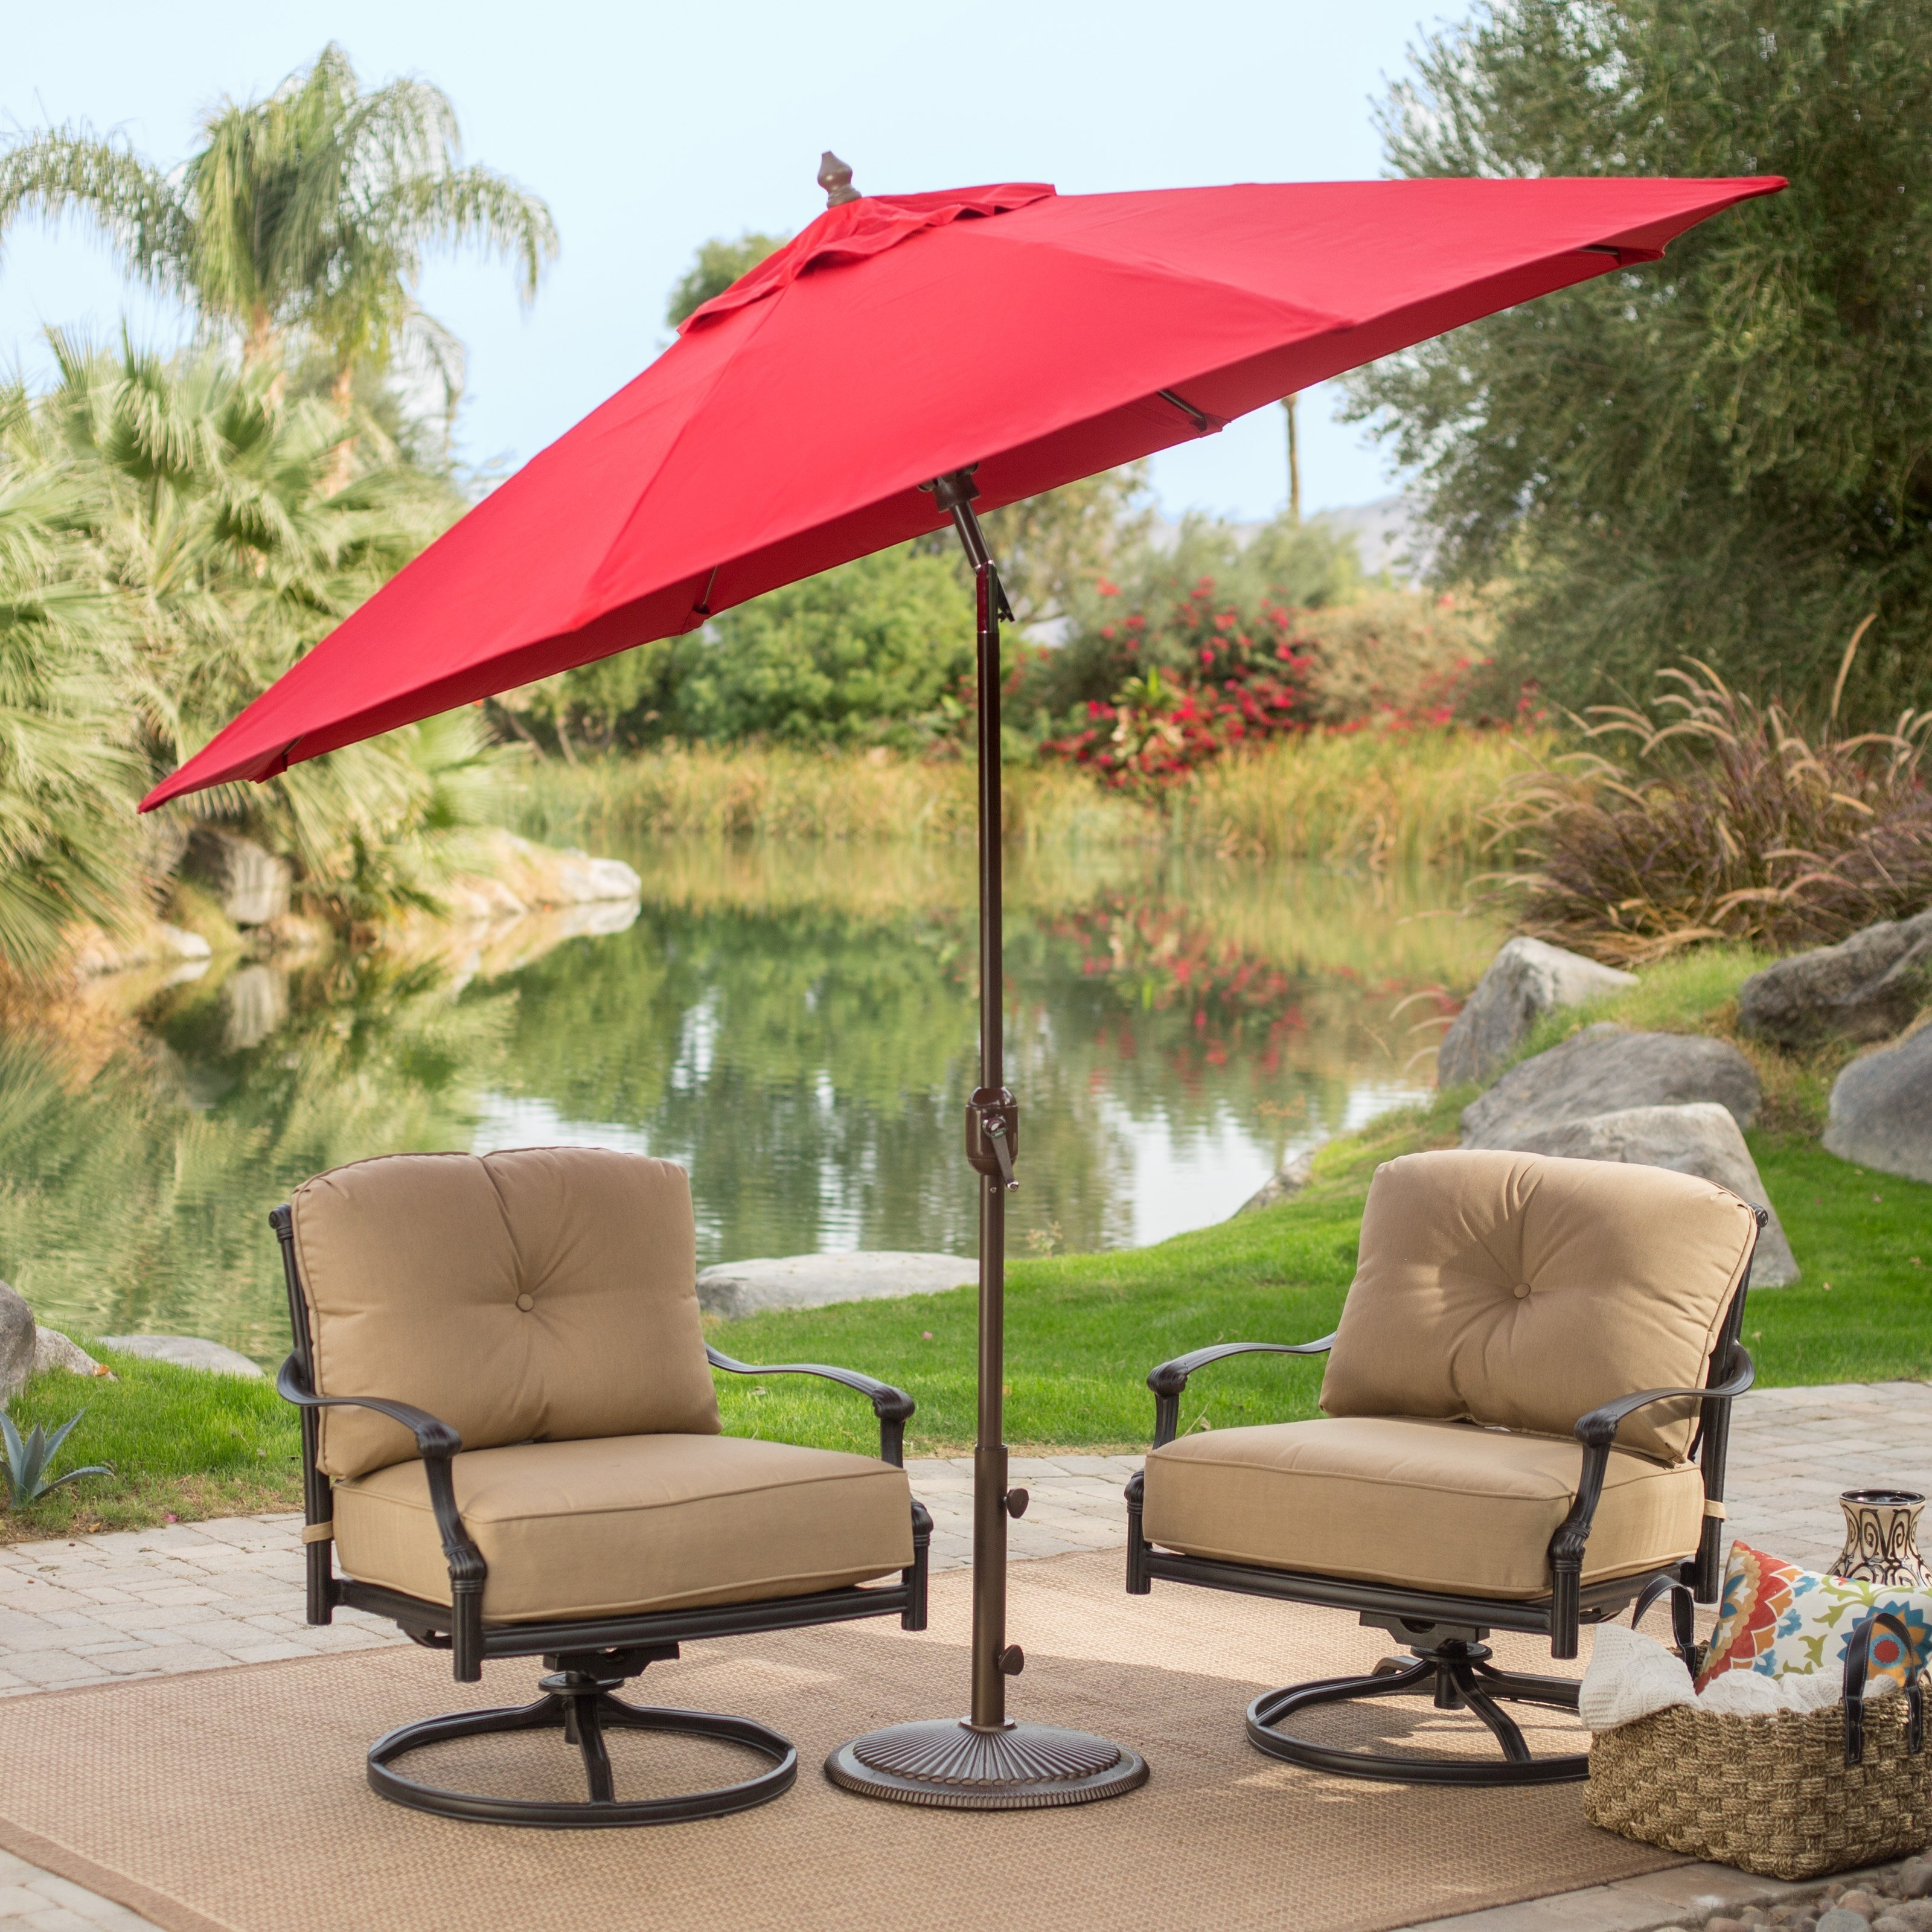 2019 Coral Coast 75 Lb. European Patio Umbrella Stand (Gallery 3 of 20)